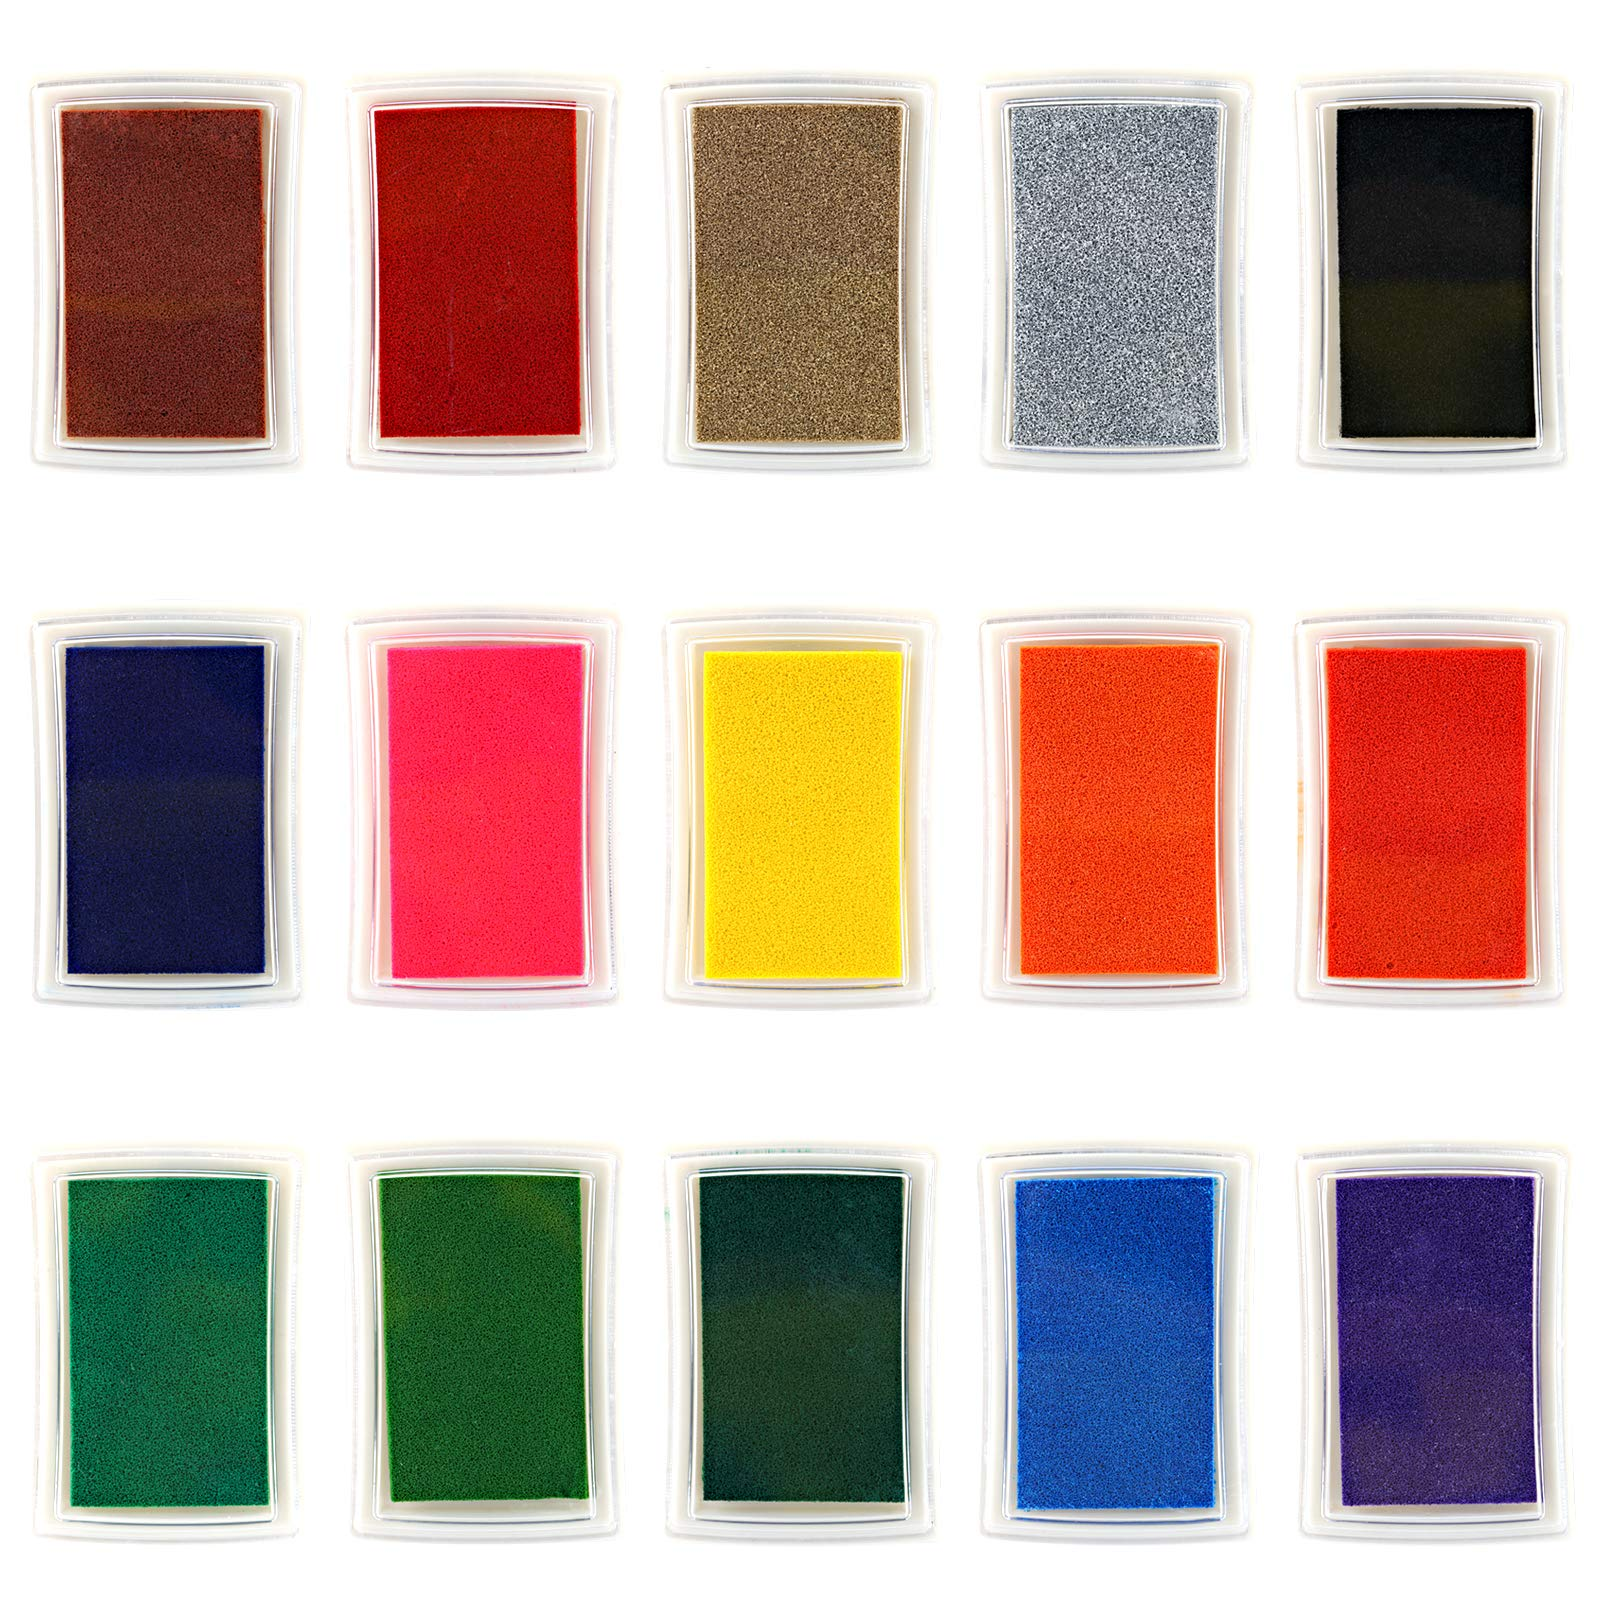 Kesoto Craft Ink Pad Stamps, 15 Color Craft Ink Pad for Stamps, Paper, Wood Fabric - Pack of 15